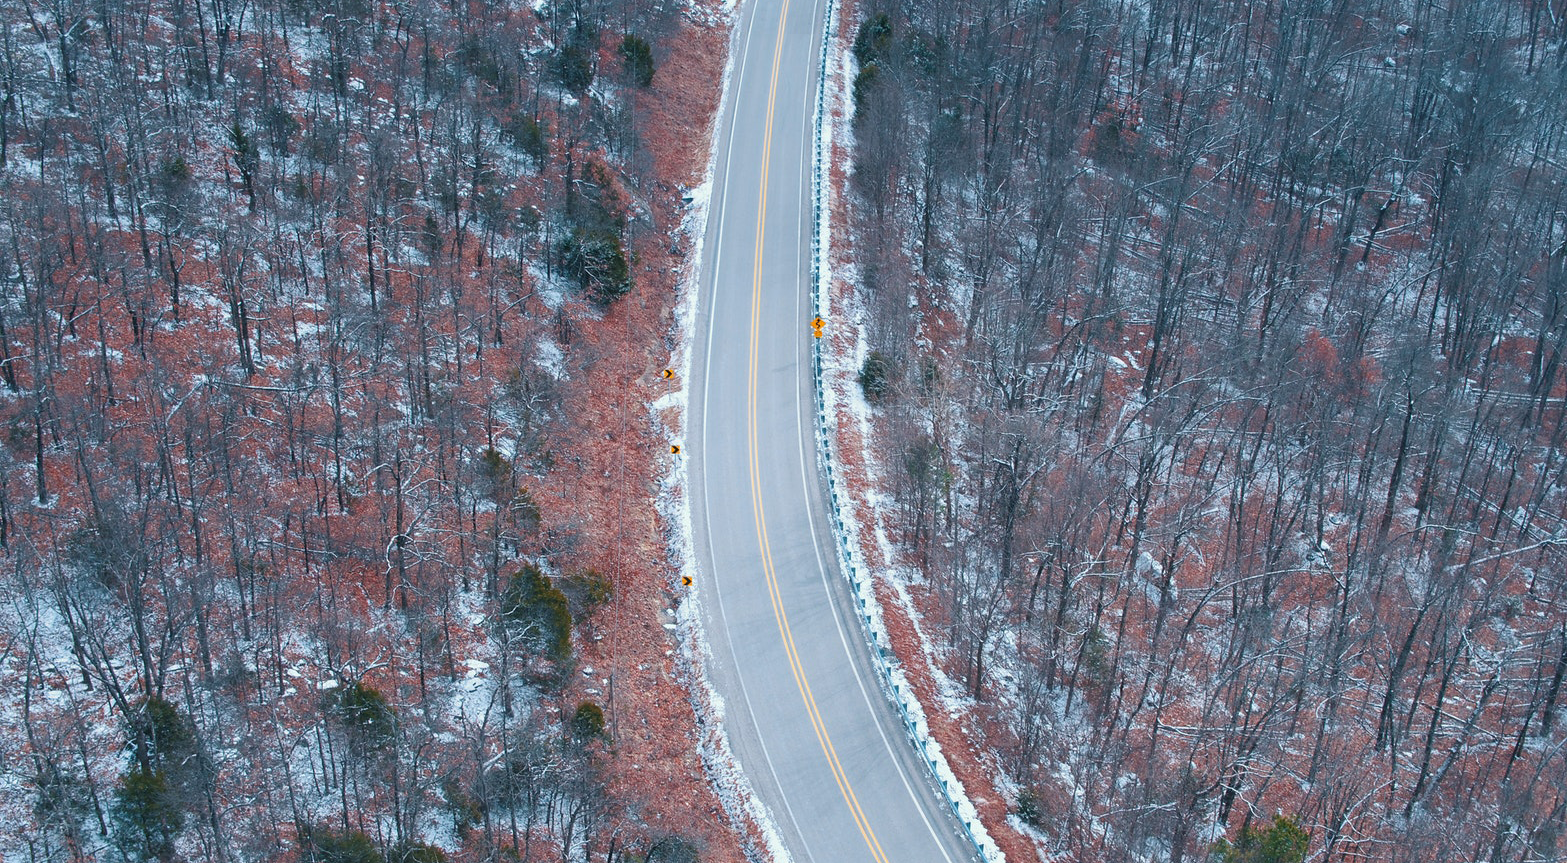 A curving road through a winter forest.